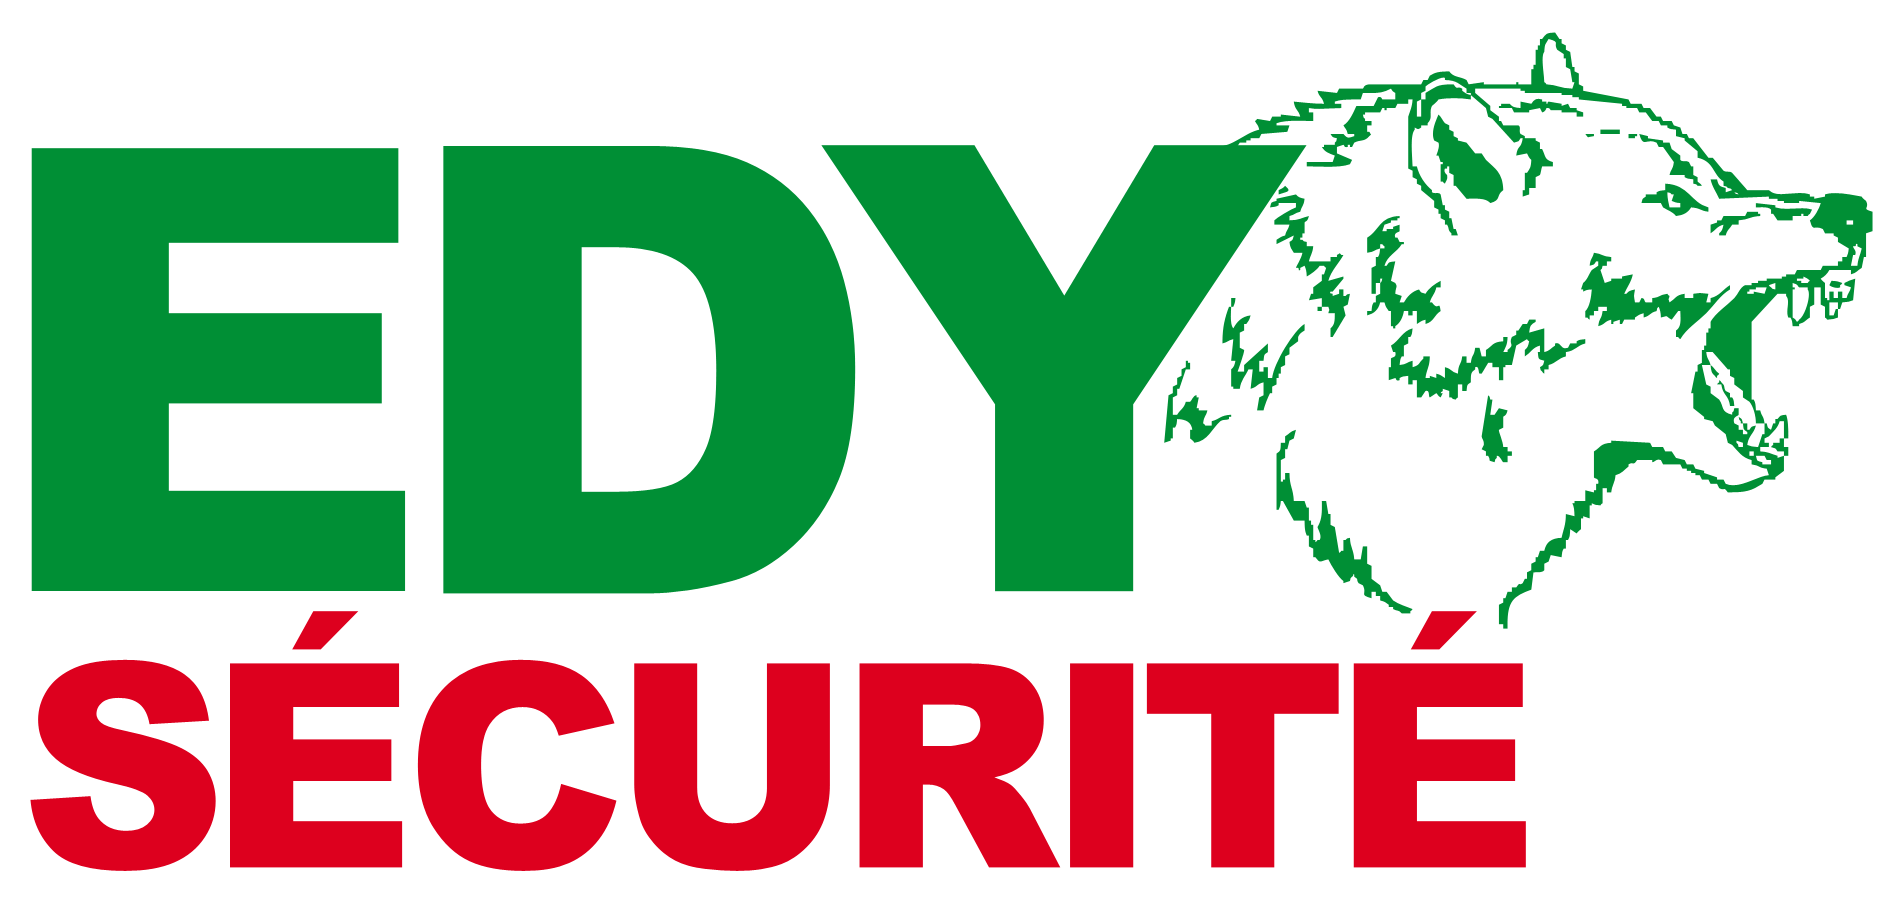 EURL EDY SECURITE